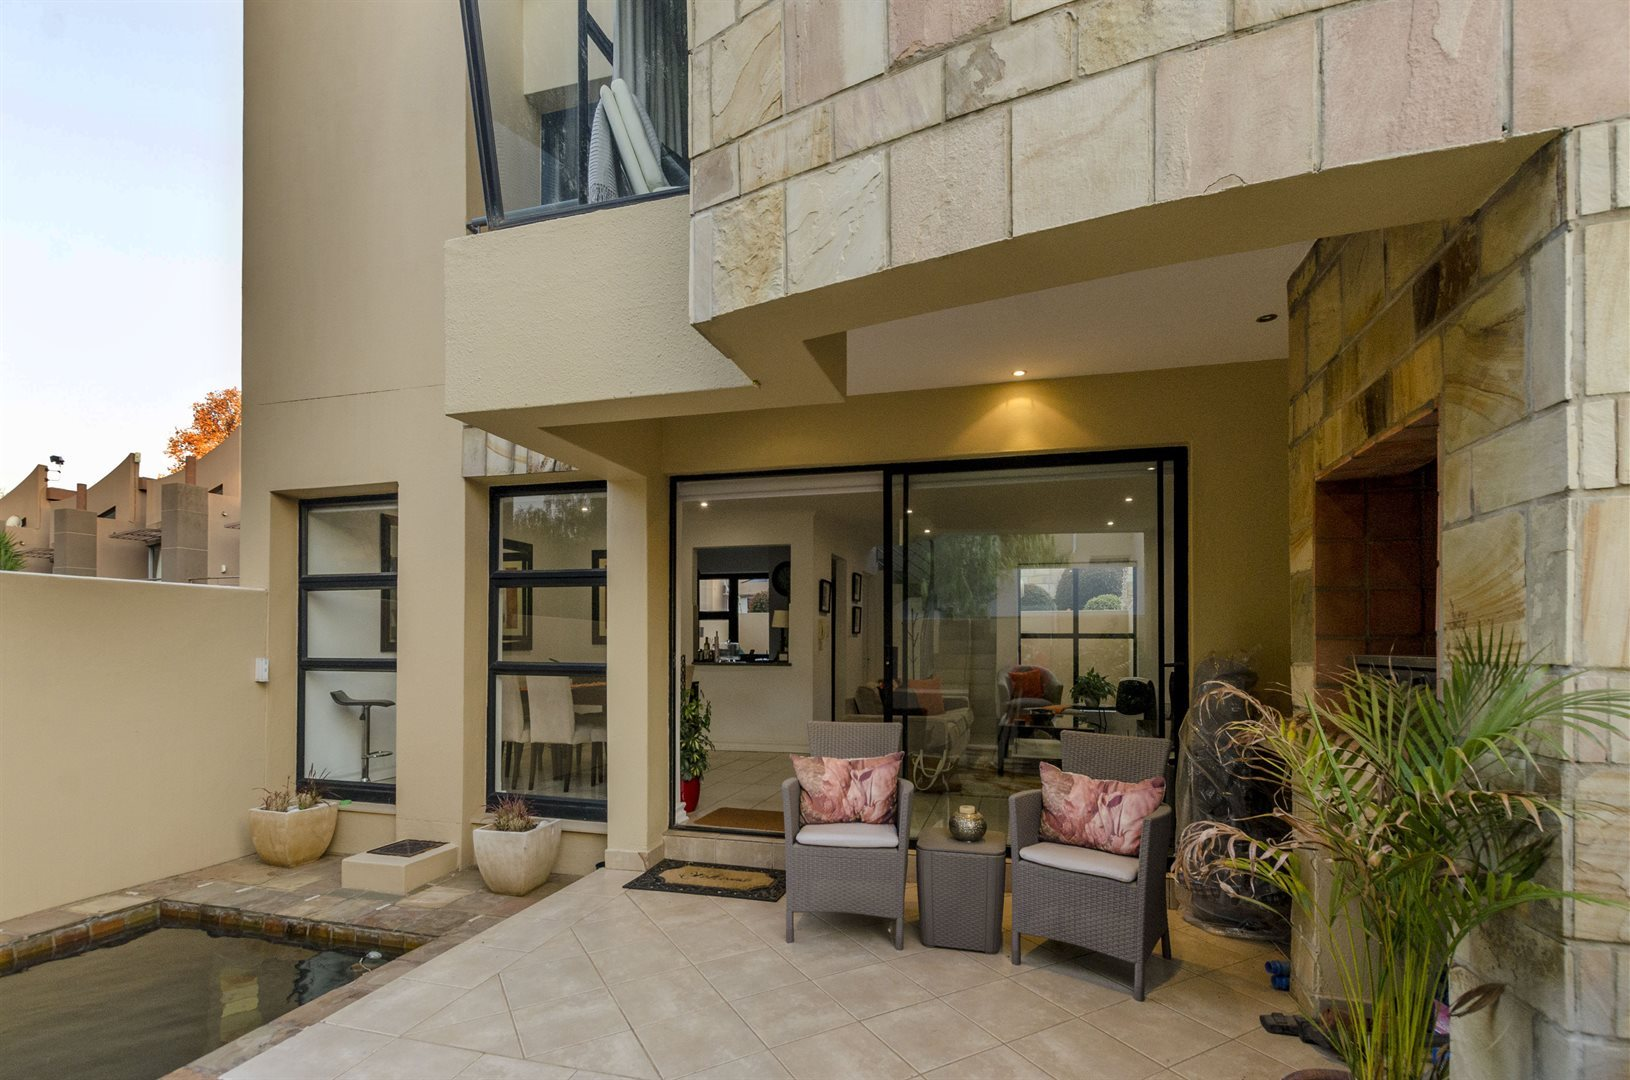 Johannesburg, Melrose North Property  | Houses For Sale Melrose North, Melrose North, Townhouse 2 bedrooms property for sale Price:2,800,000